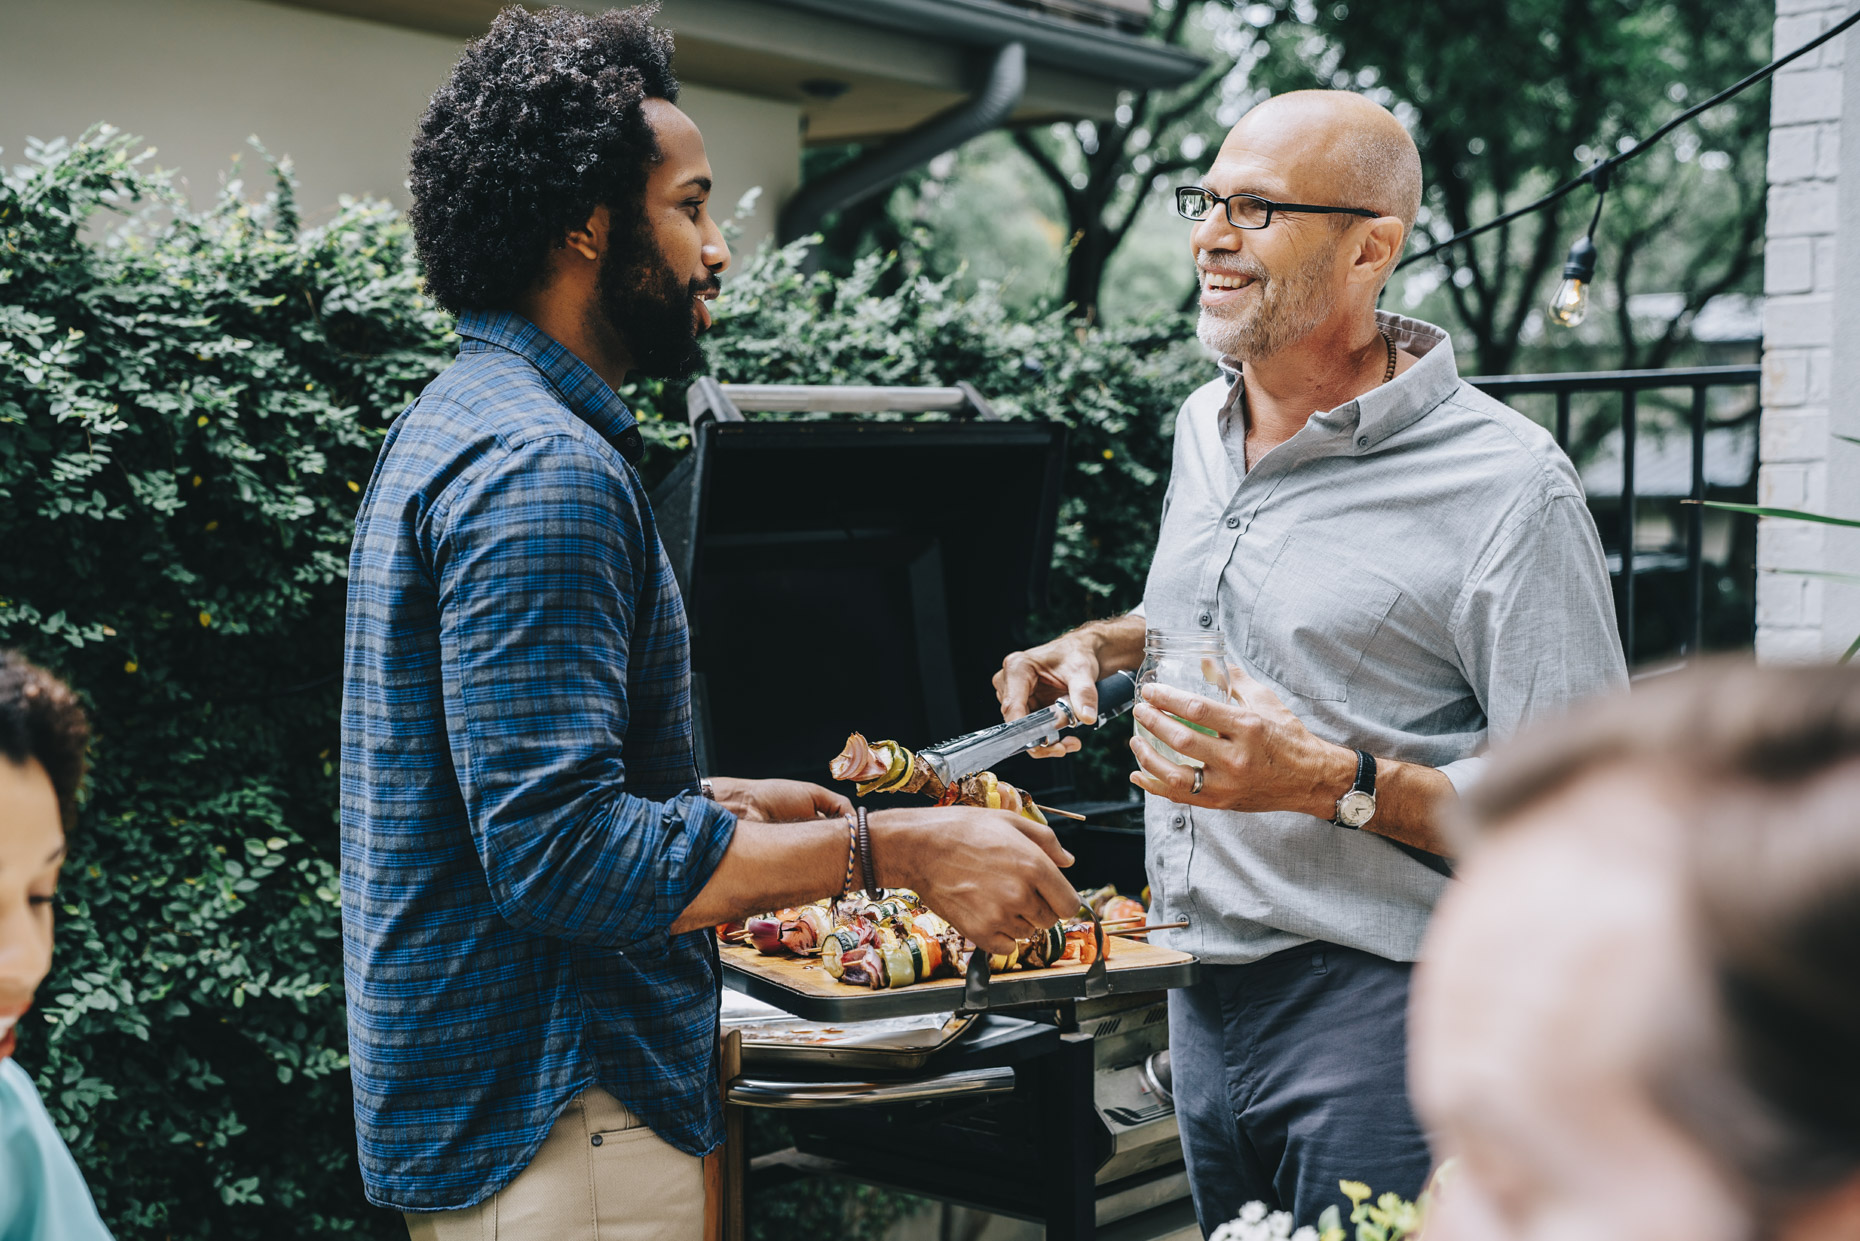 Man holding tray while friend puts food from grill on it